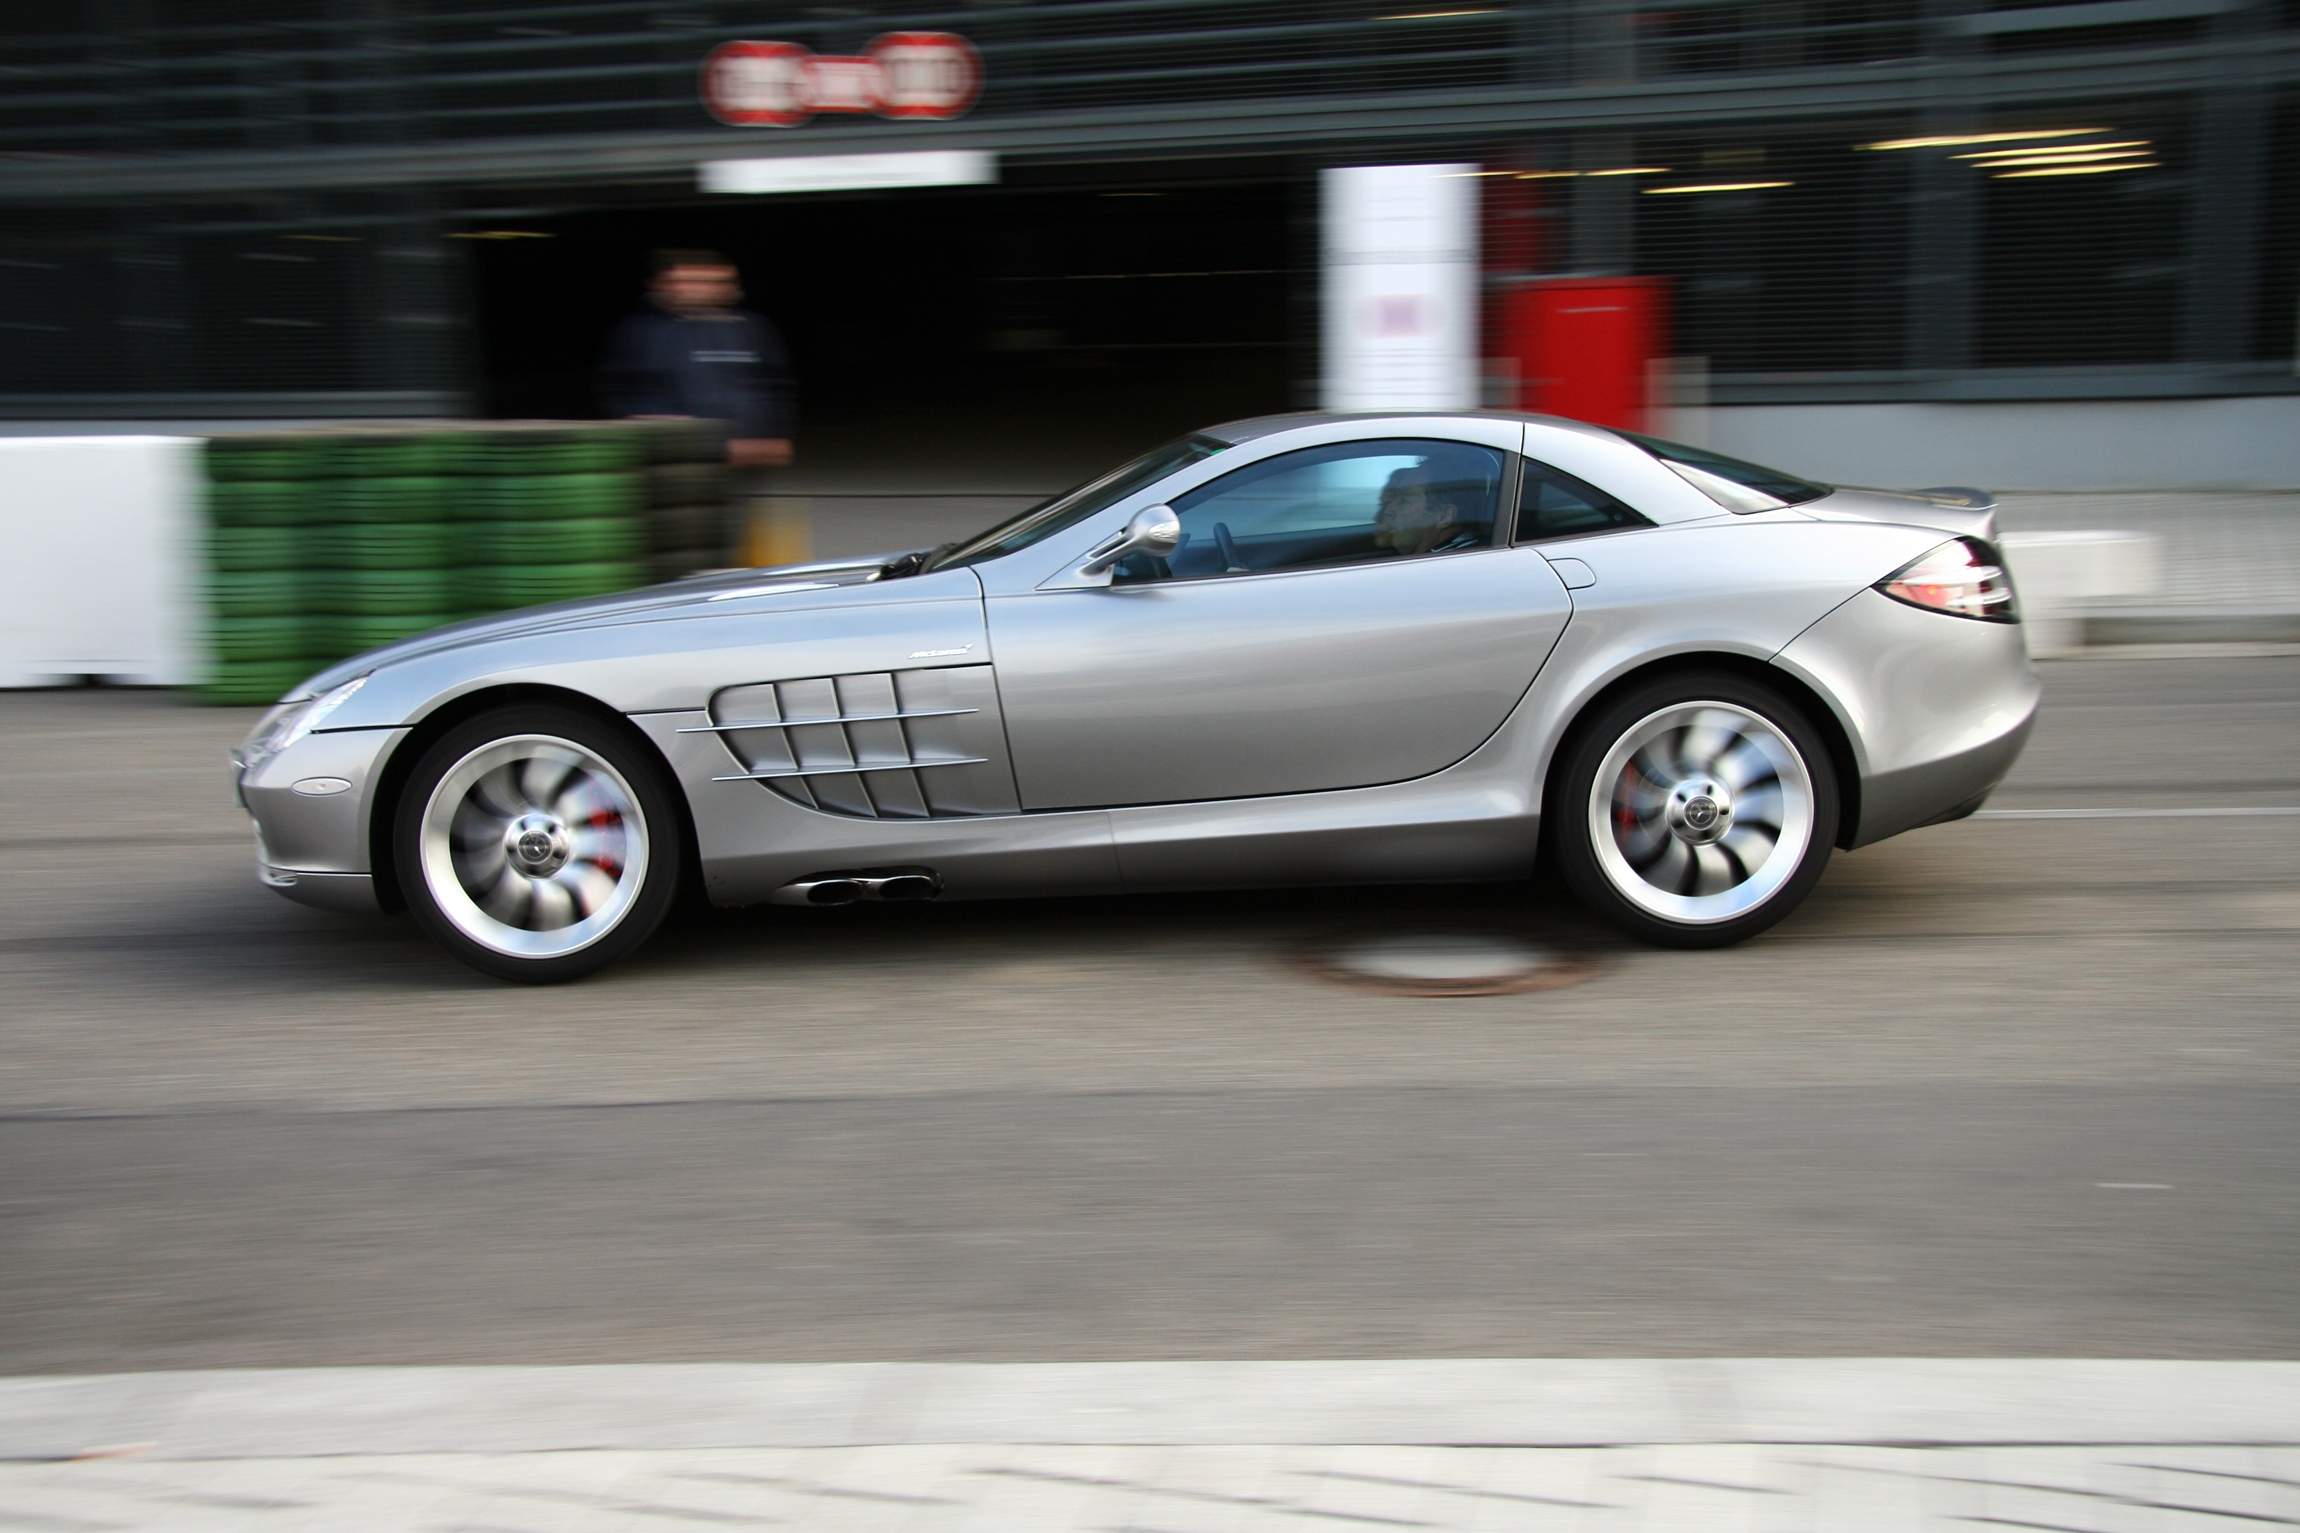 File:Mercedes SLR C199 2007 amk.jpg - Wikimedia Commons